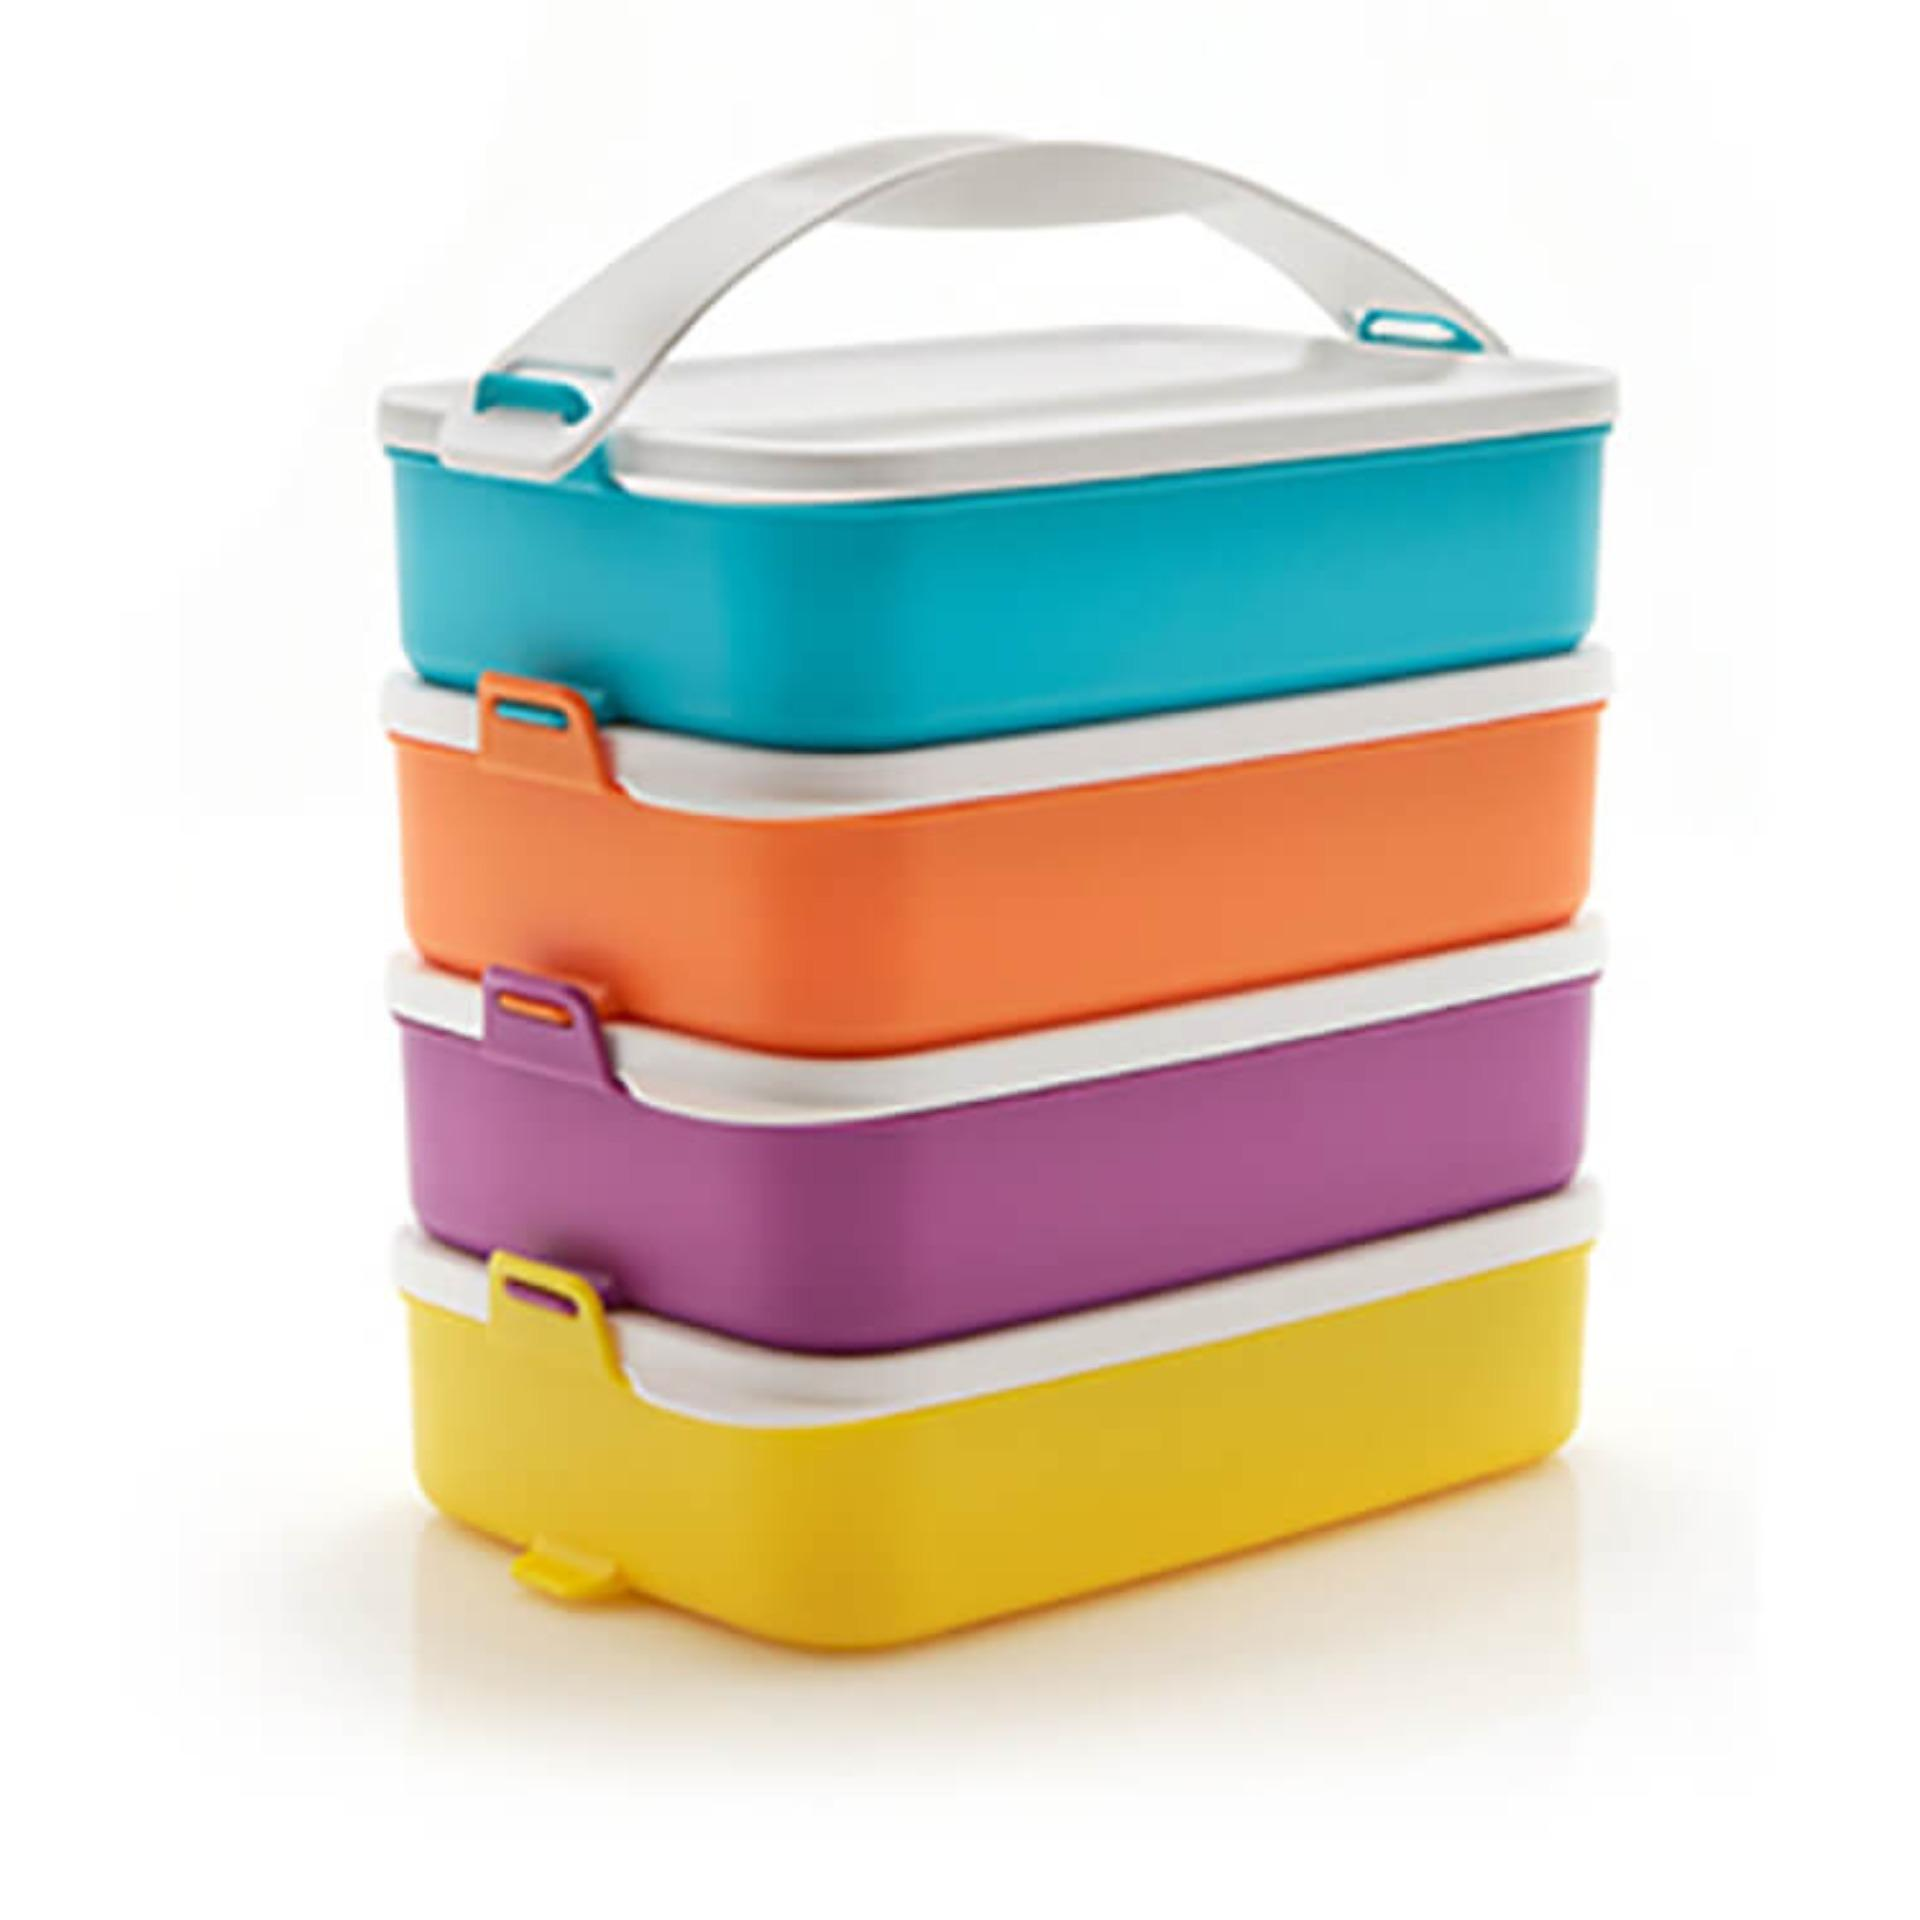 Tupperware Click To Go New Color 2017 - 4 susun rantang makan inovatif Free Ongkir Sampai Bali